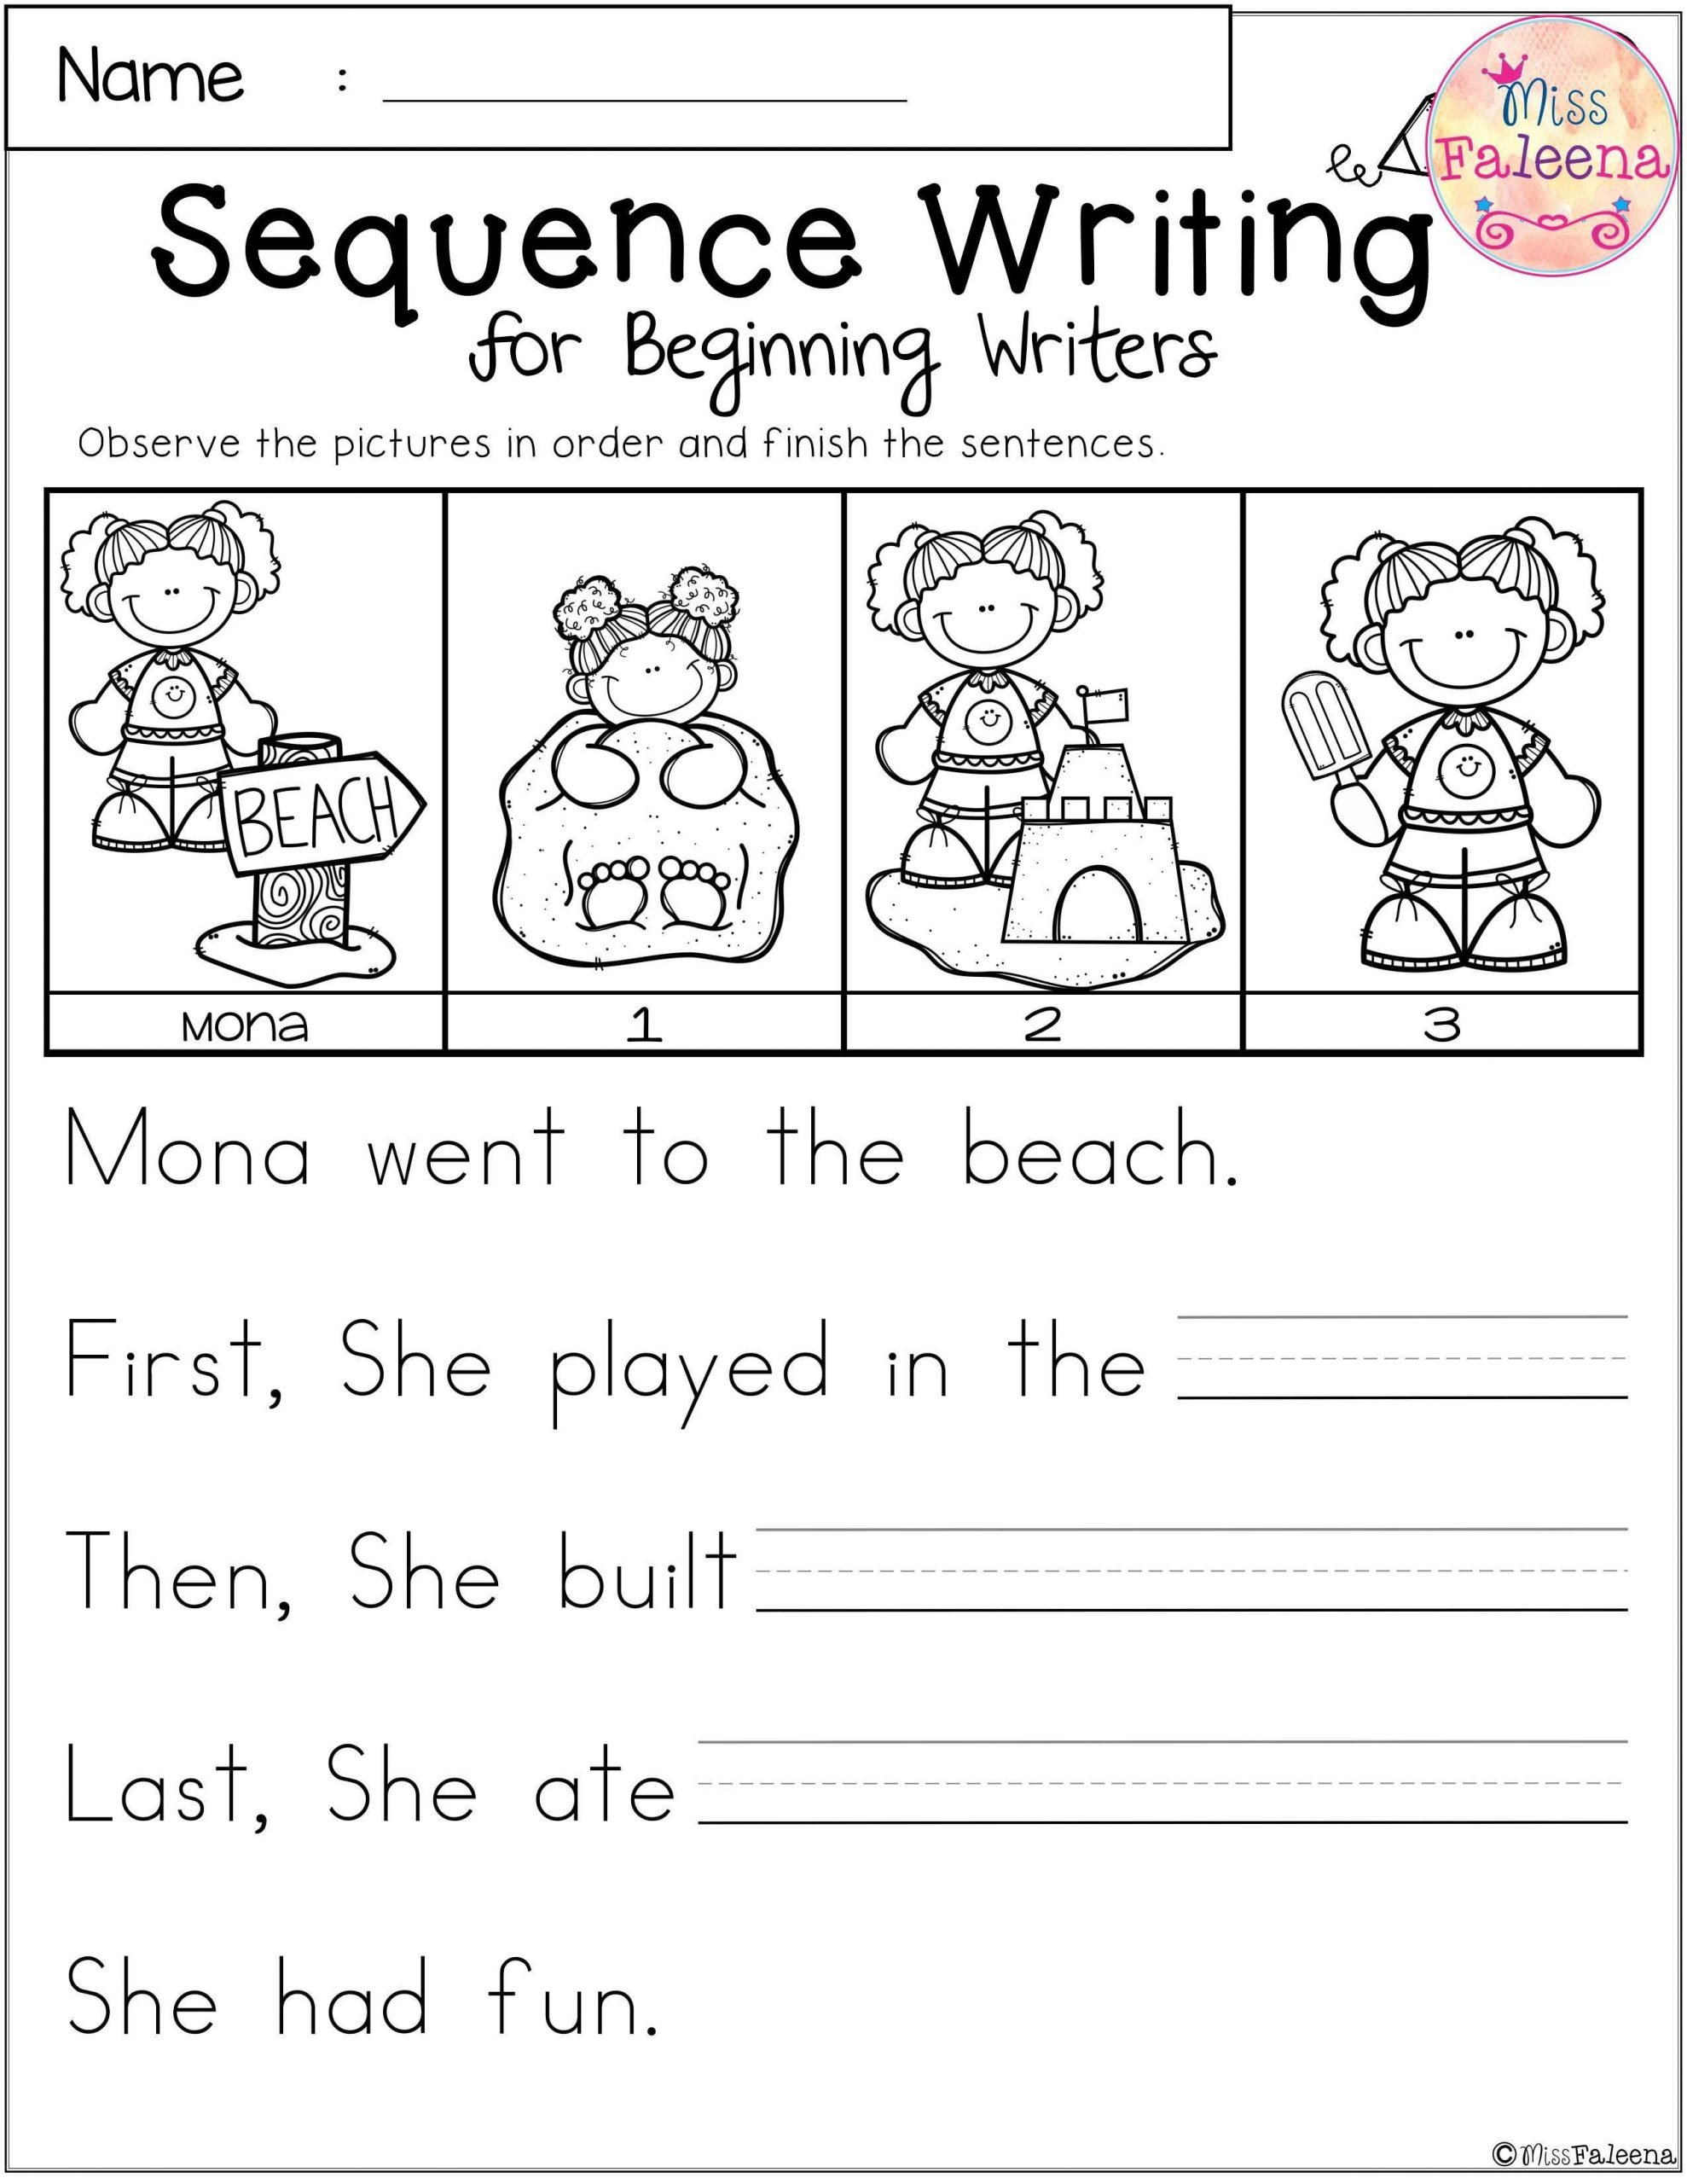 Sequencing Picture Worksheets Free Sequence Writing for Beginning Writers